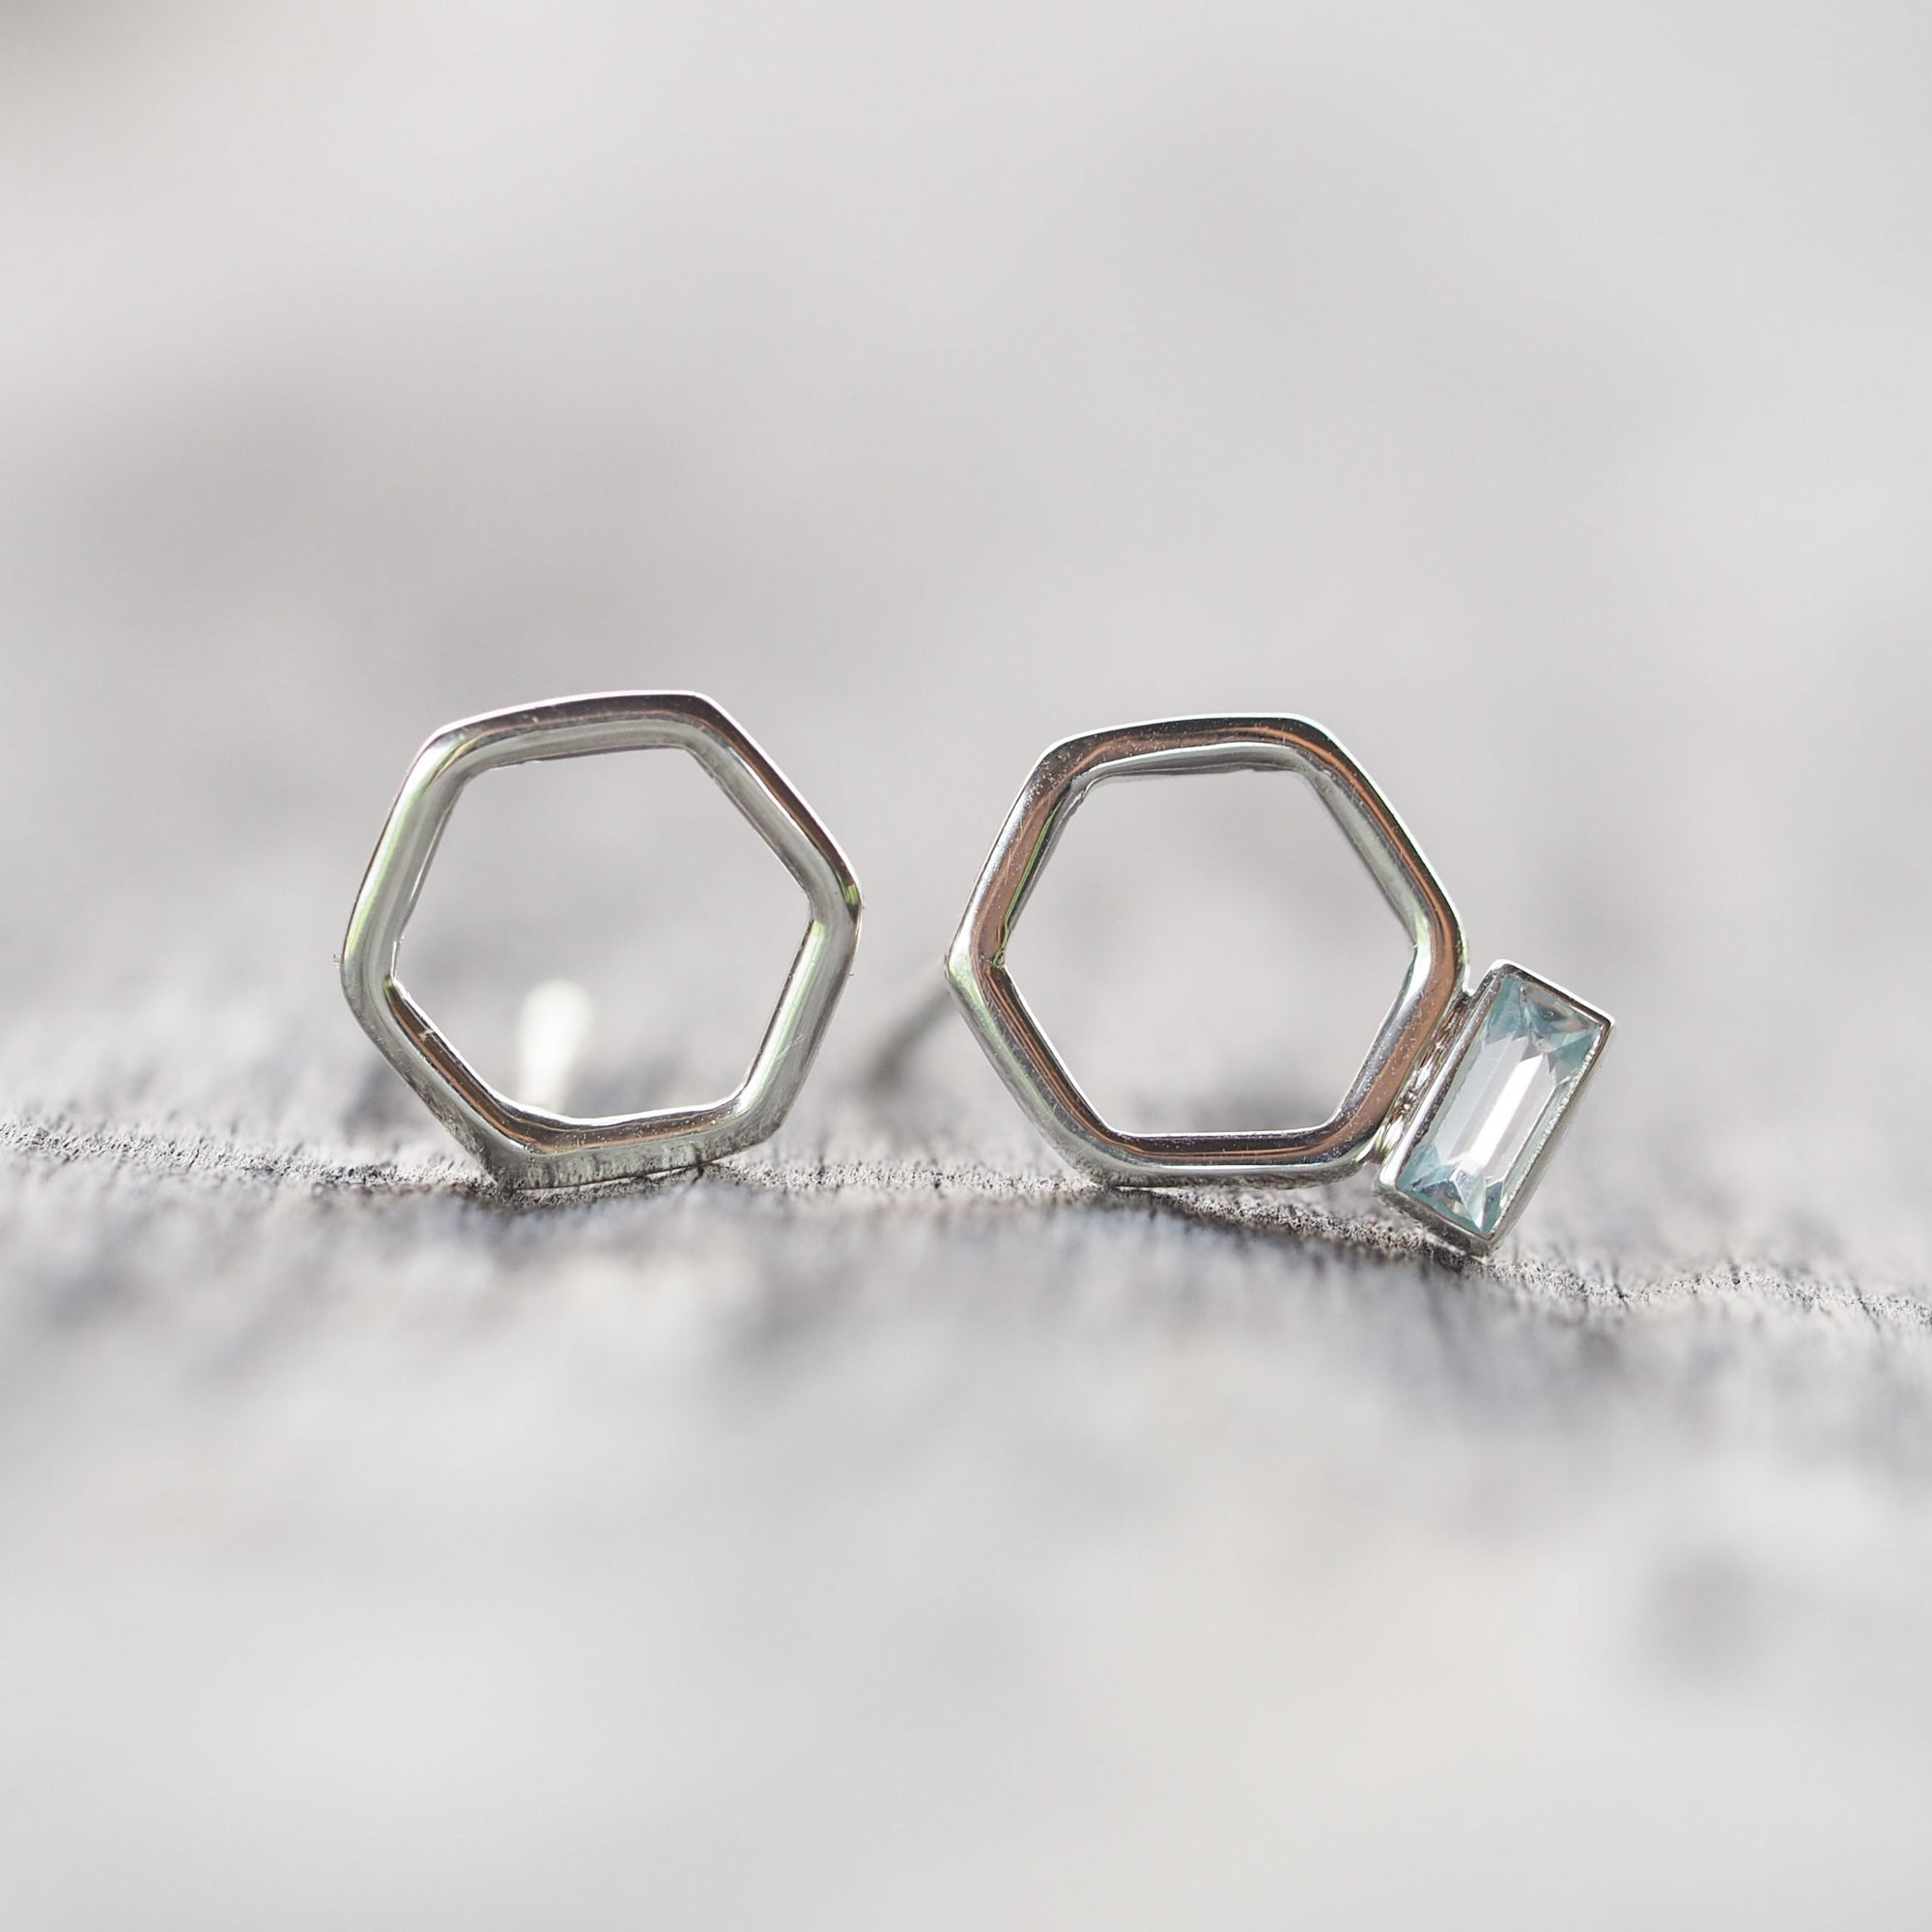 Mismatched Hexagon and Aquamarine Stud Earrings - Gardens of the Sun Jewelry